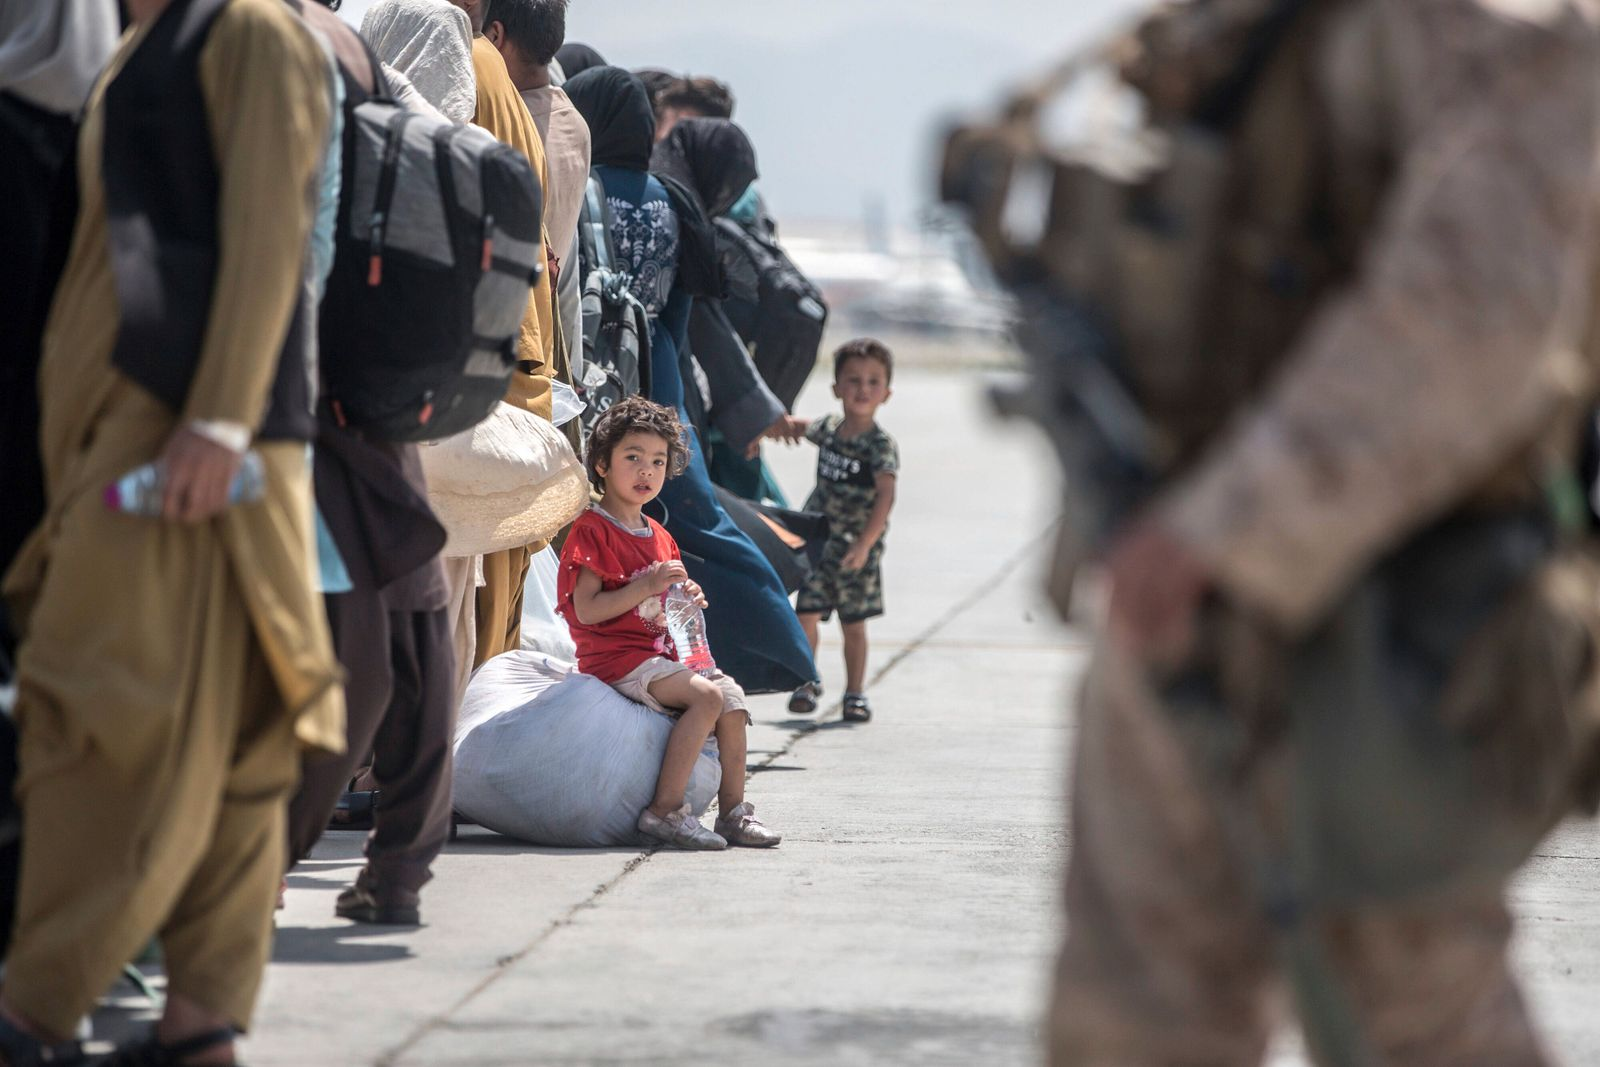 A child waits with her family to board a U.S. Air Force Boeing C-17 Globemaster III during an evacuation at Hamid Karzai